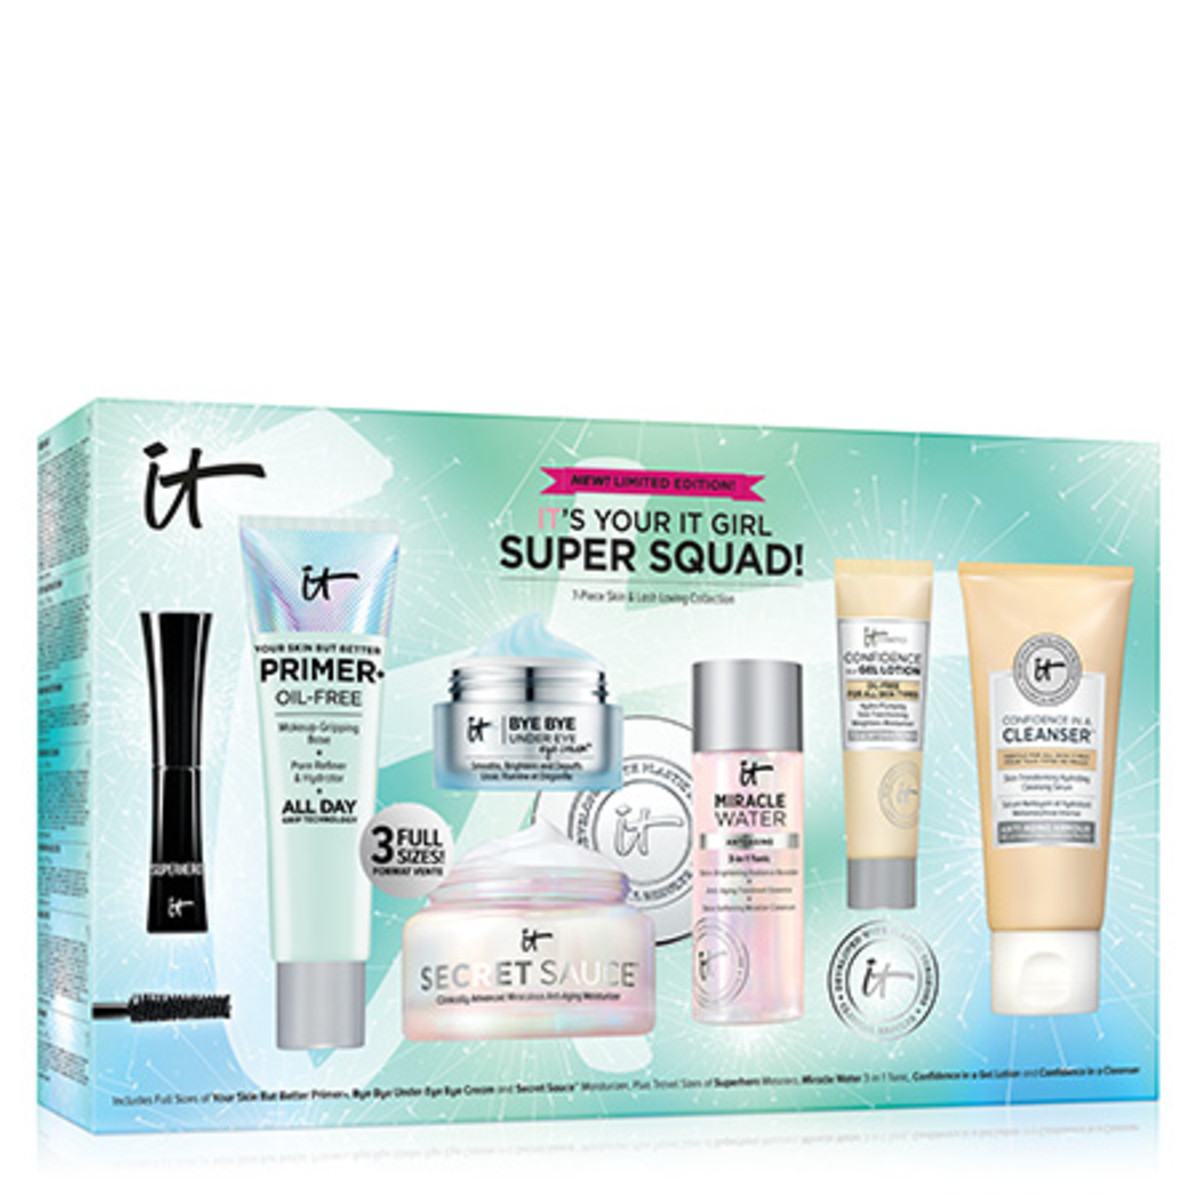 IT Cosmetics IT's Your IT Girl Super Squad Pack Shot